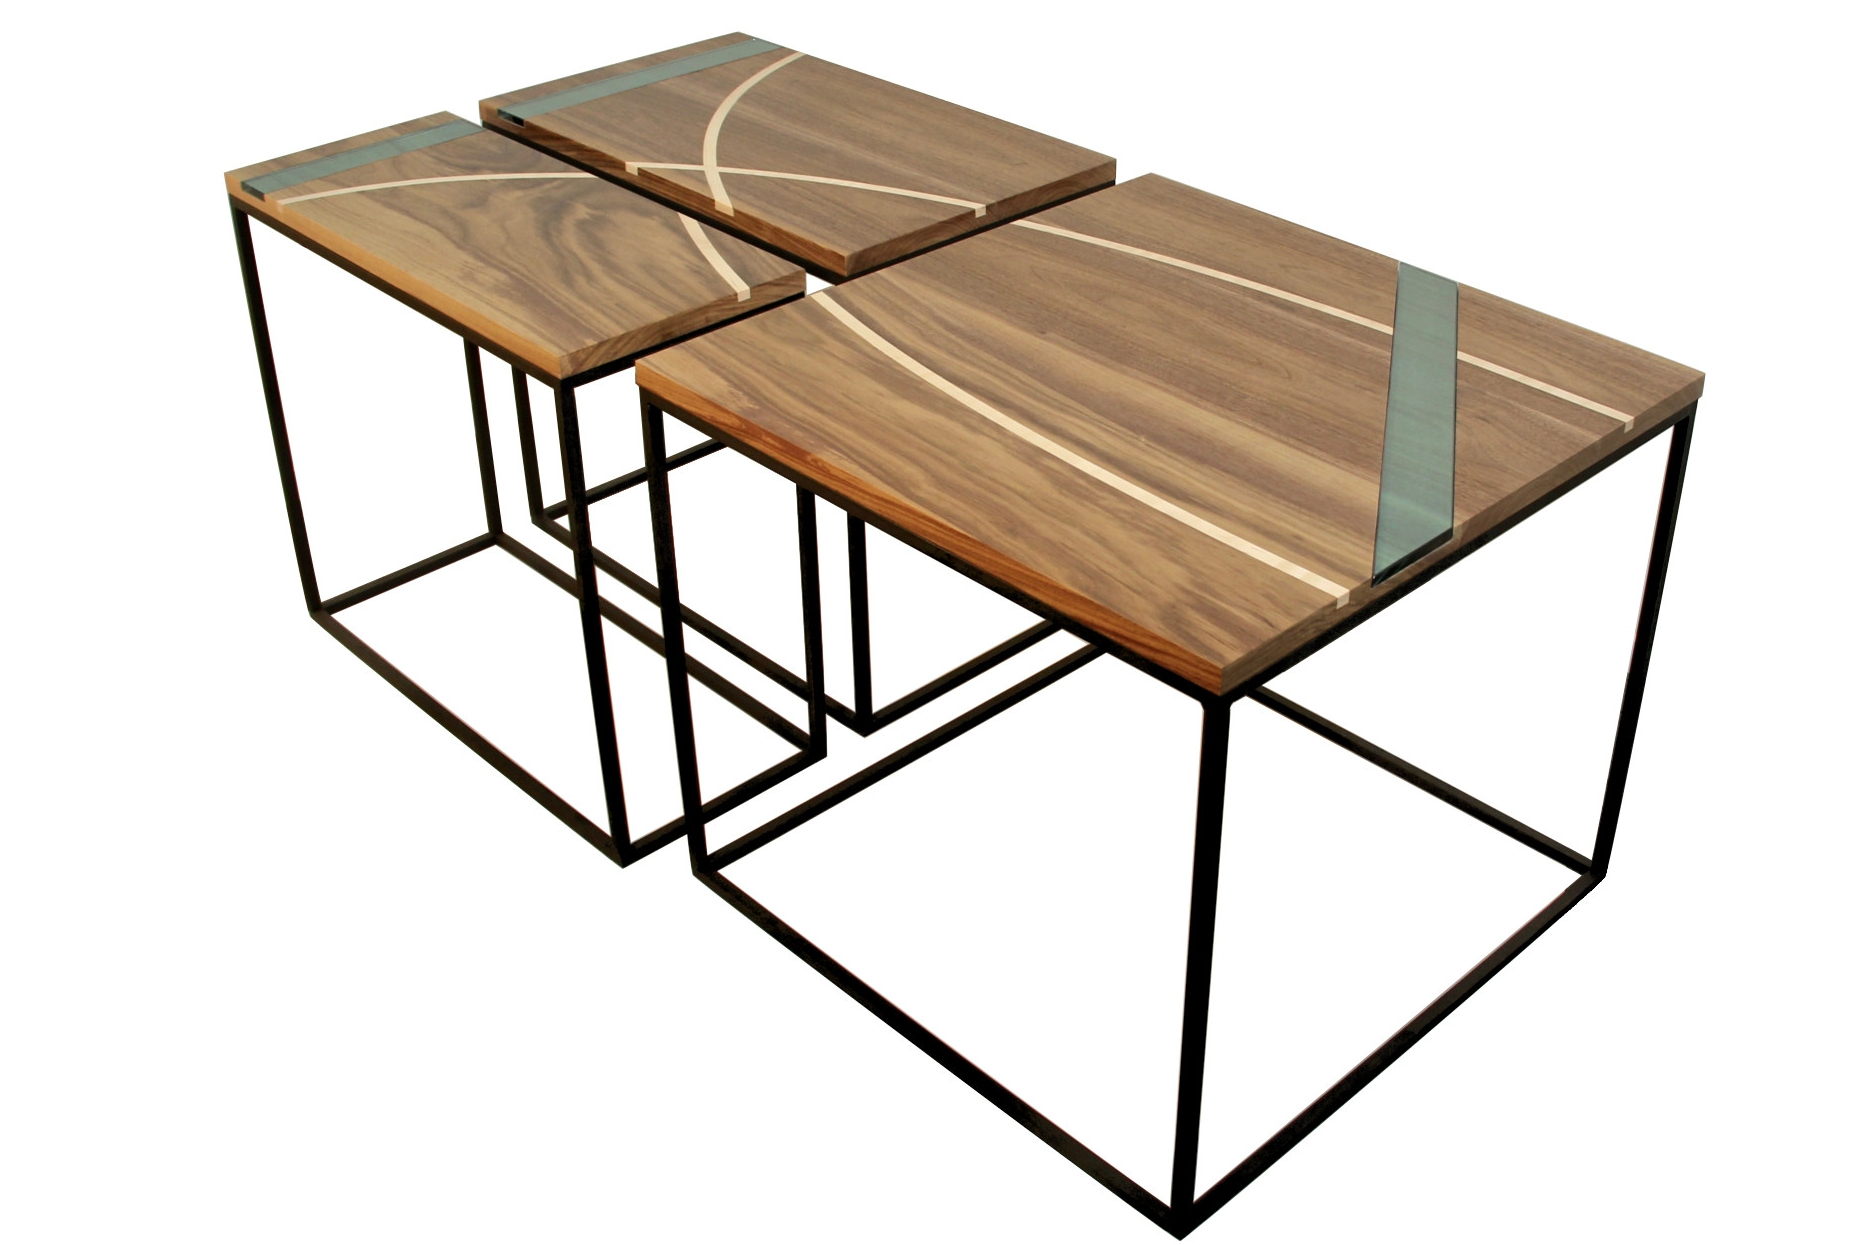 Triptych tables in steel - Black Walnut with Maple and Glass Inlays